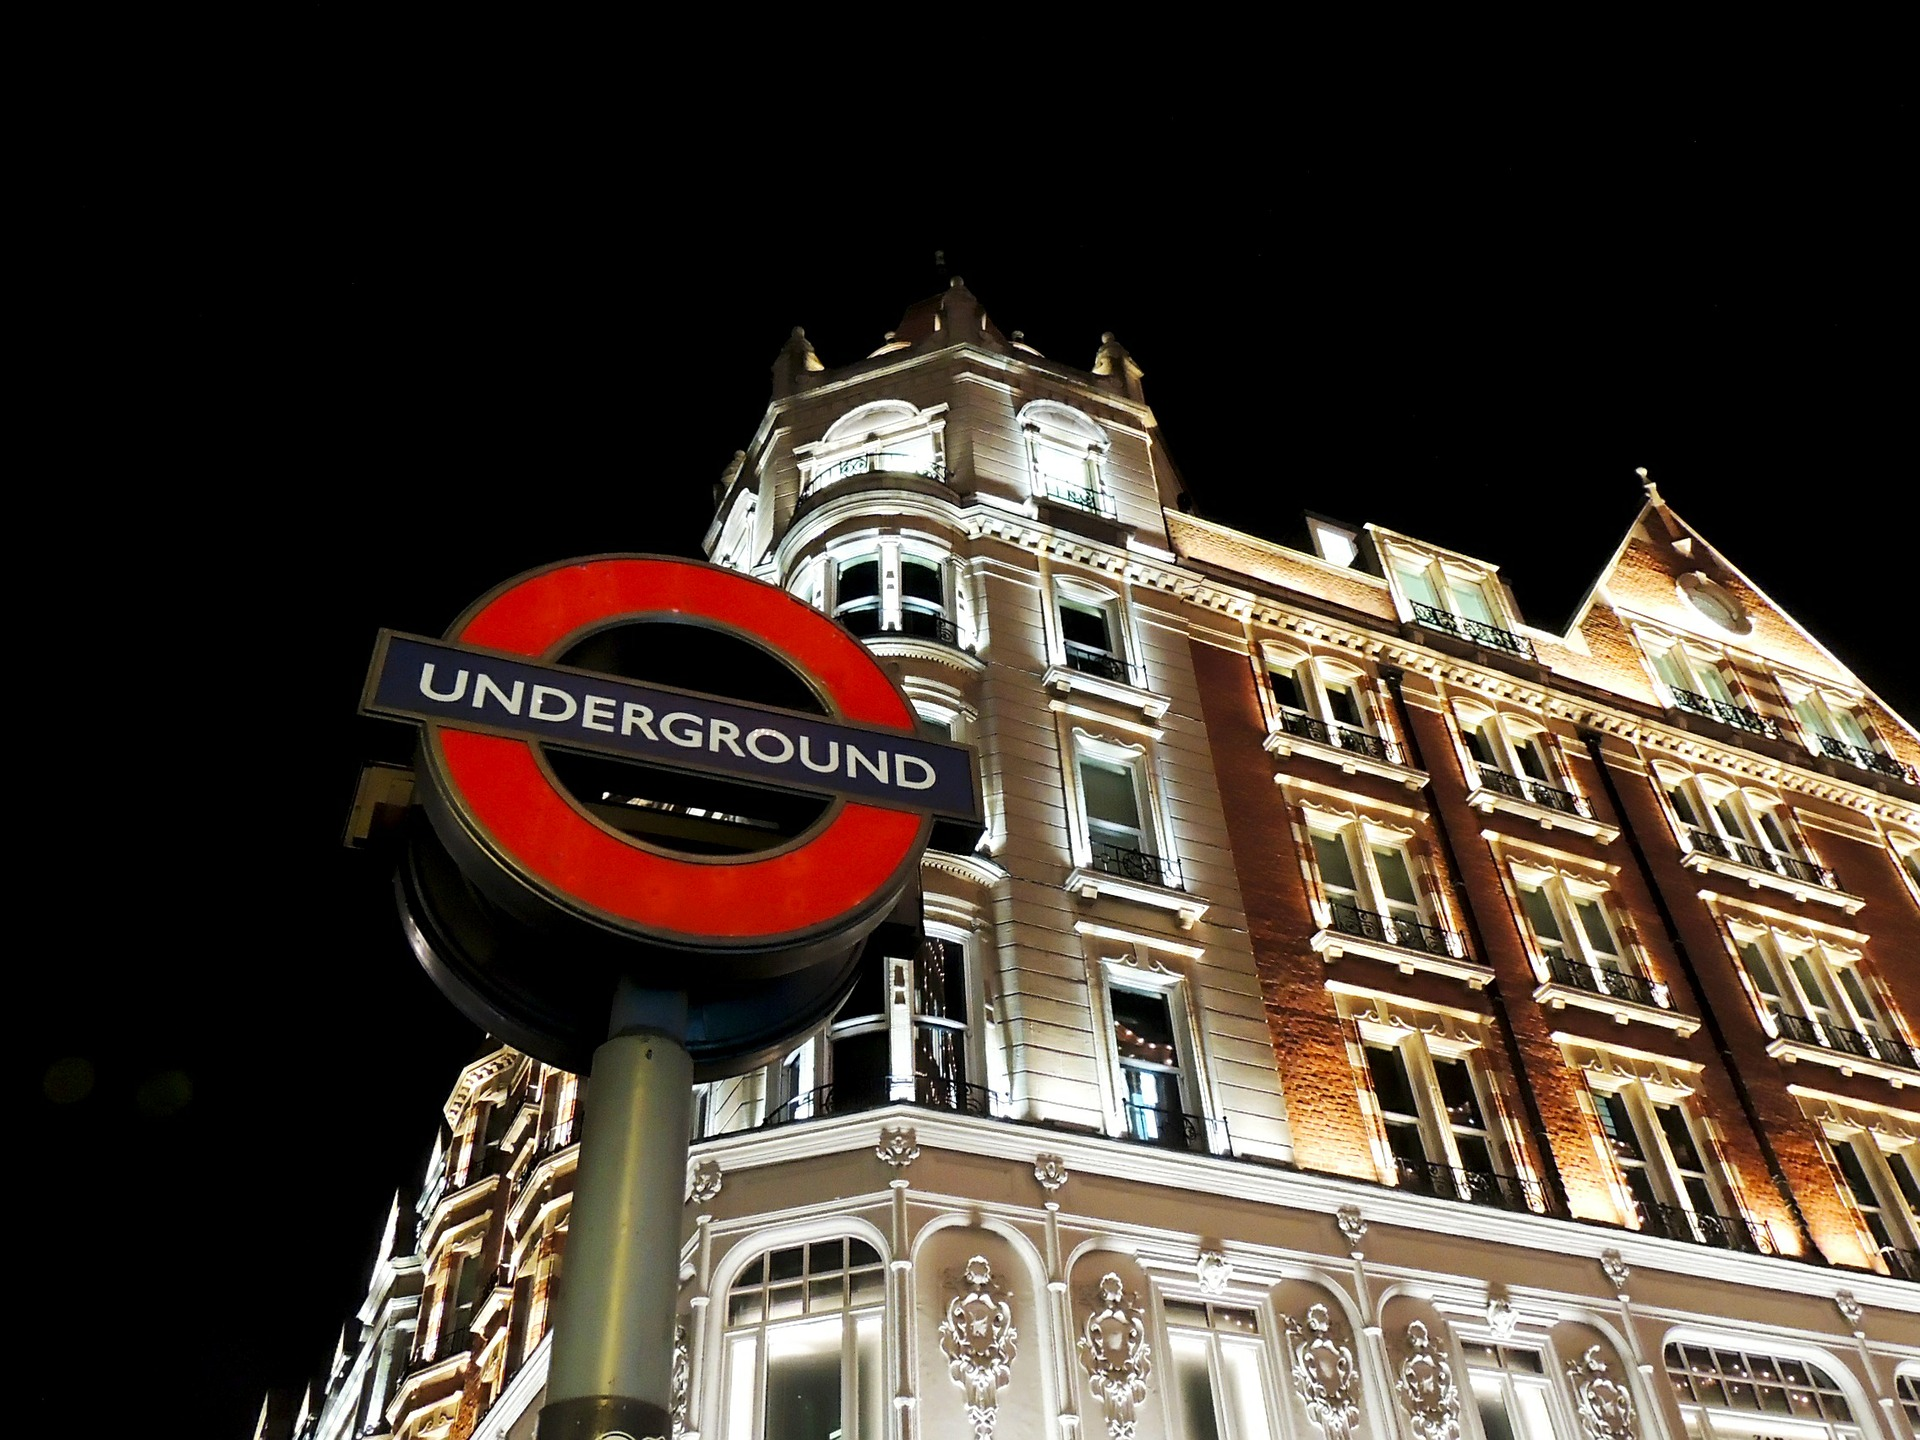 Underground tube for London public transport